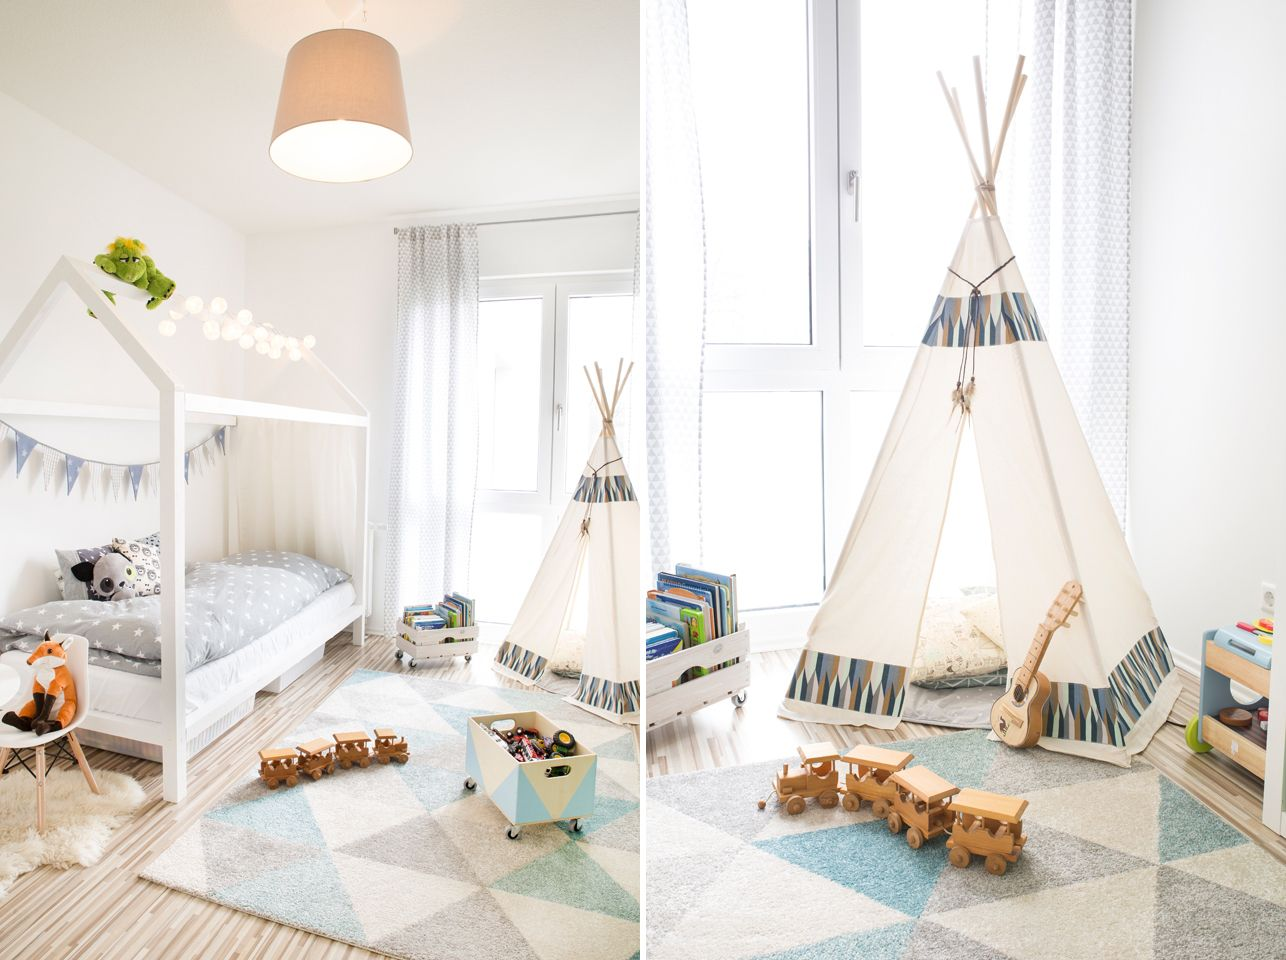 kinderzimmer einrichten mit teppich tipi wird 39 s bei. Black Bedroom Furniture Sets. Home Design Ideas